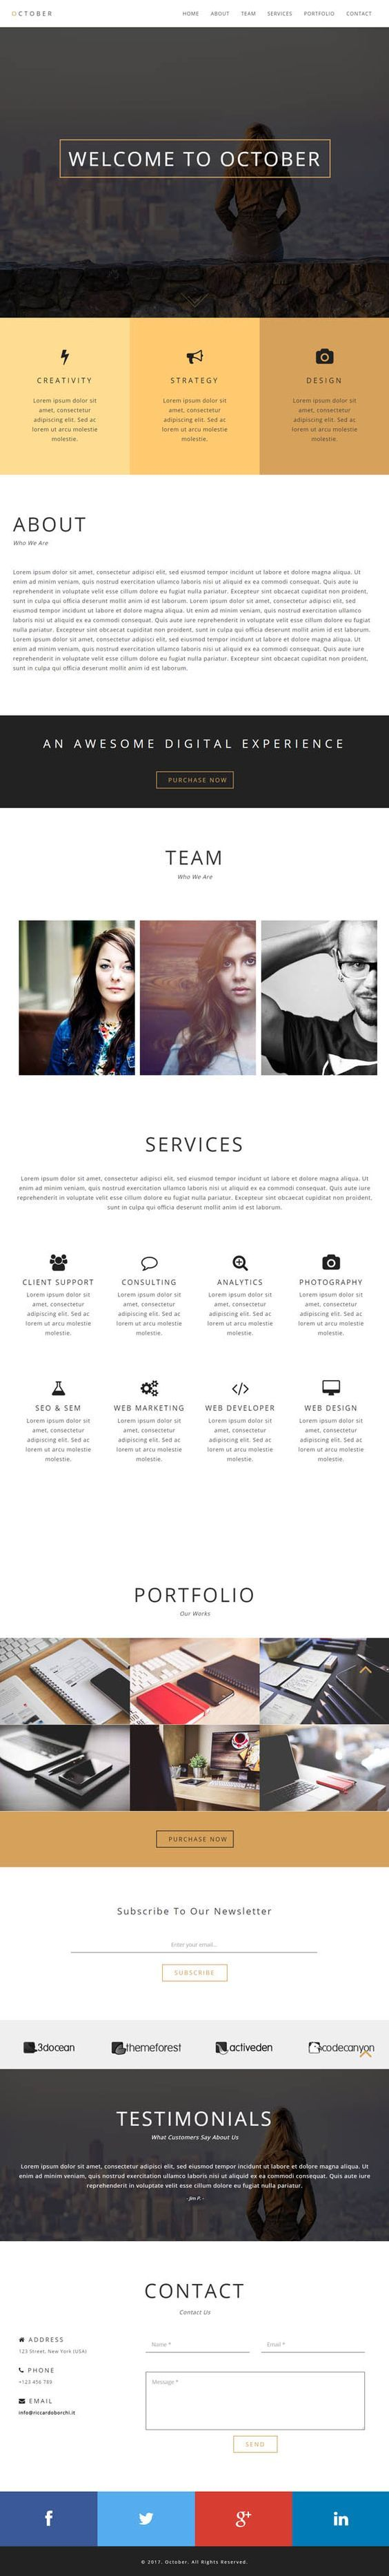 October - Responsive One Page WordPress Theme by RBWebDesign